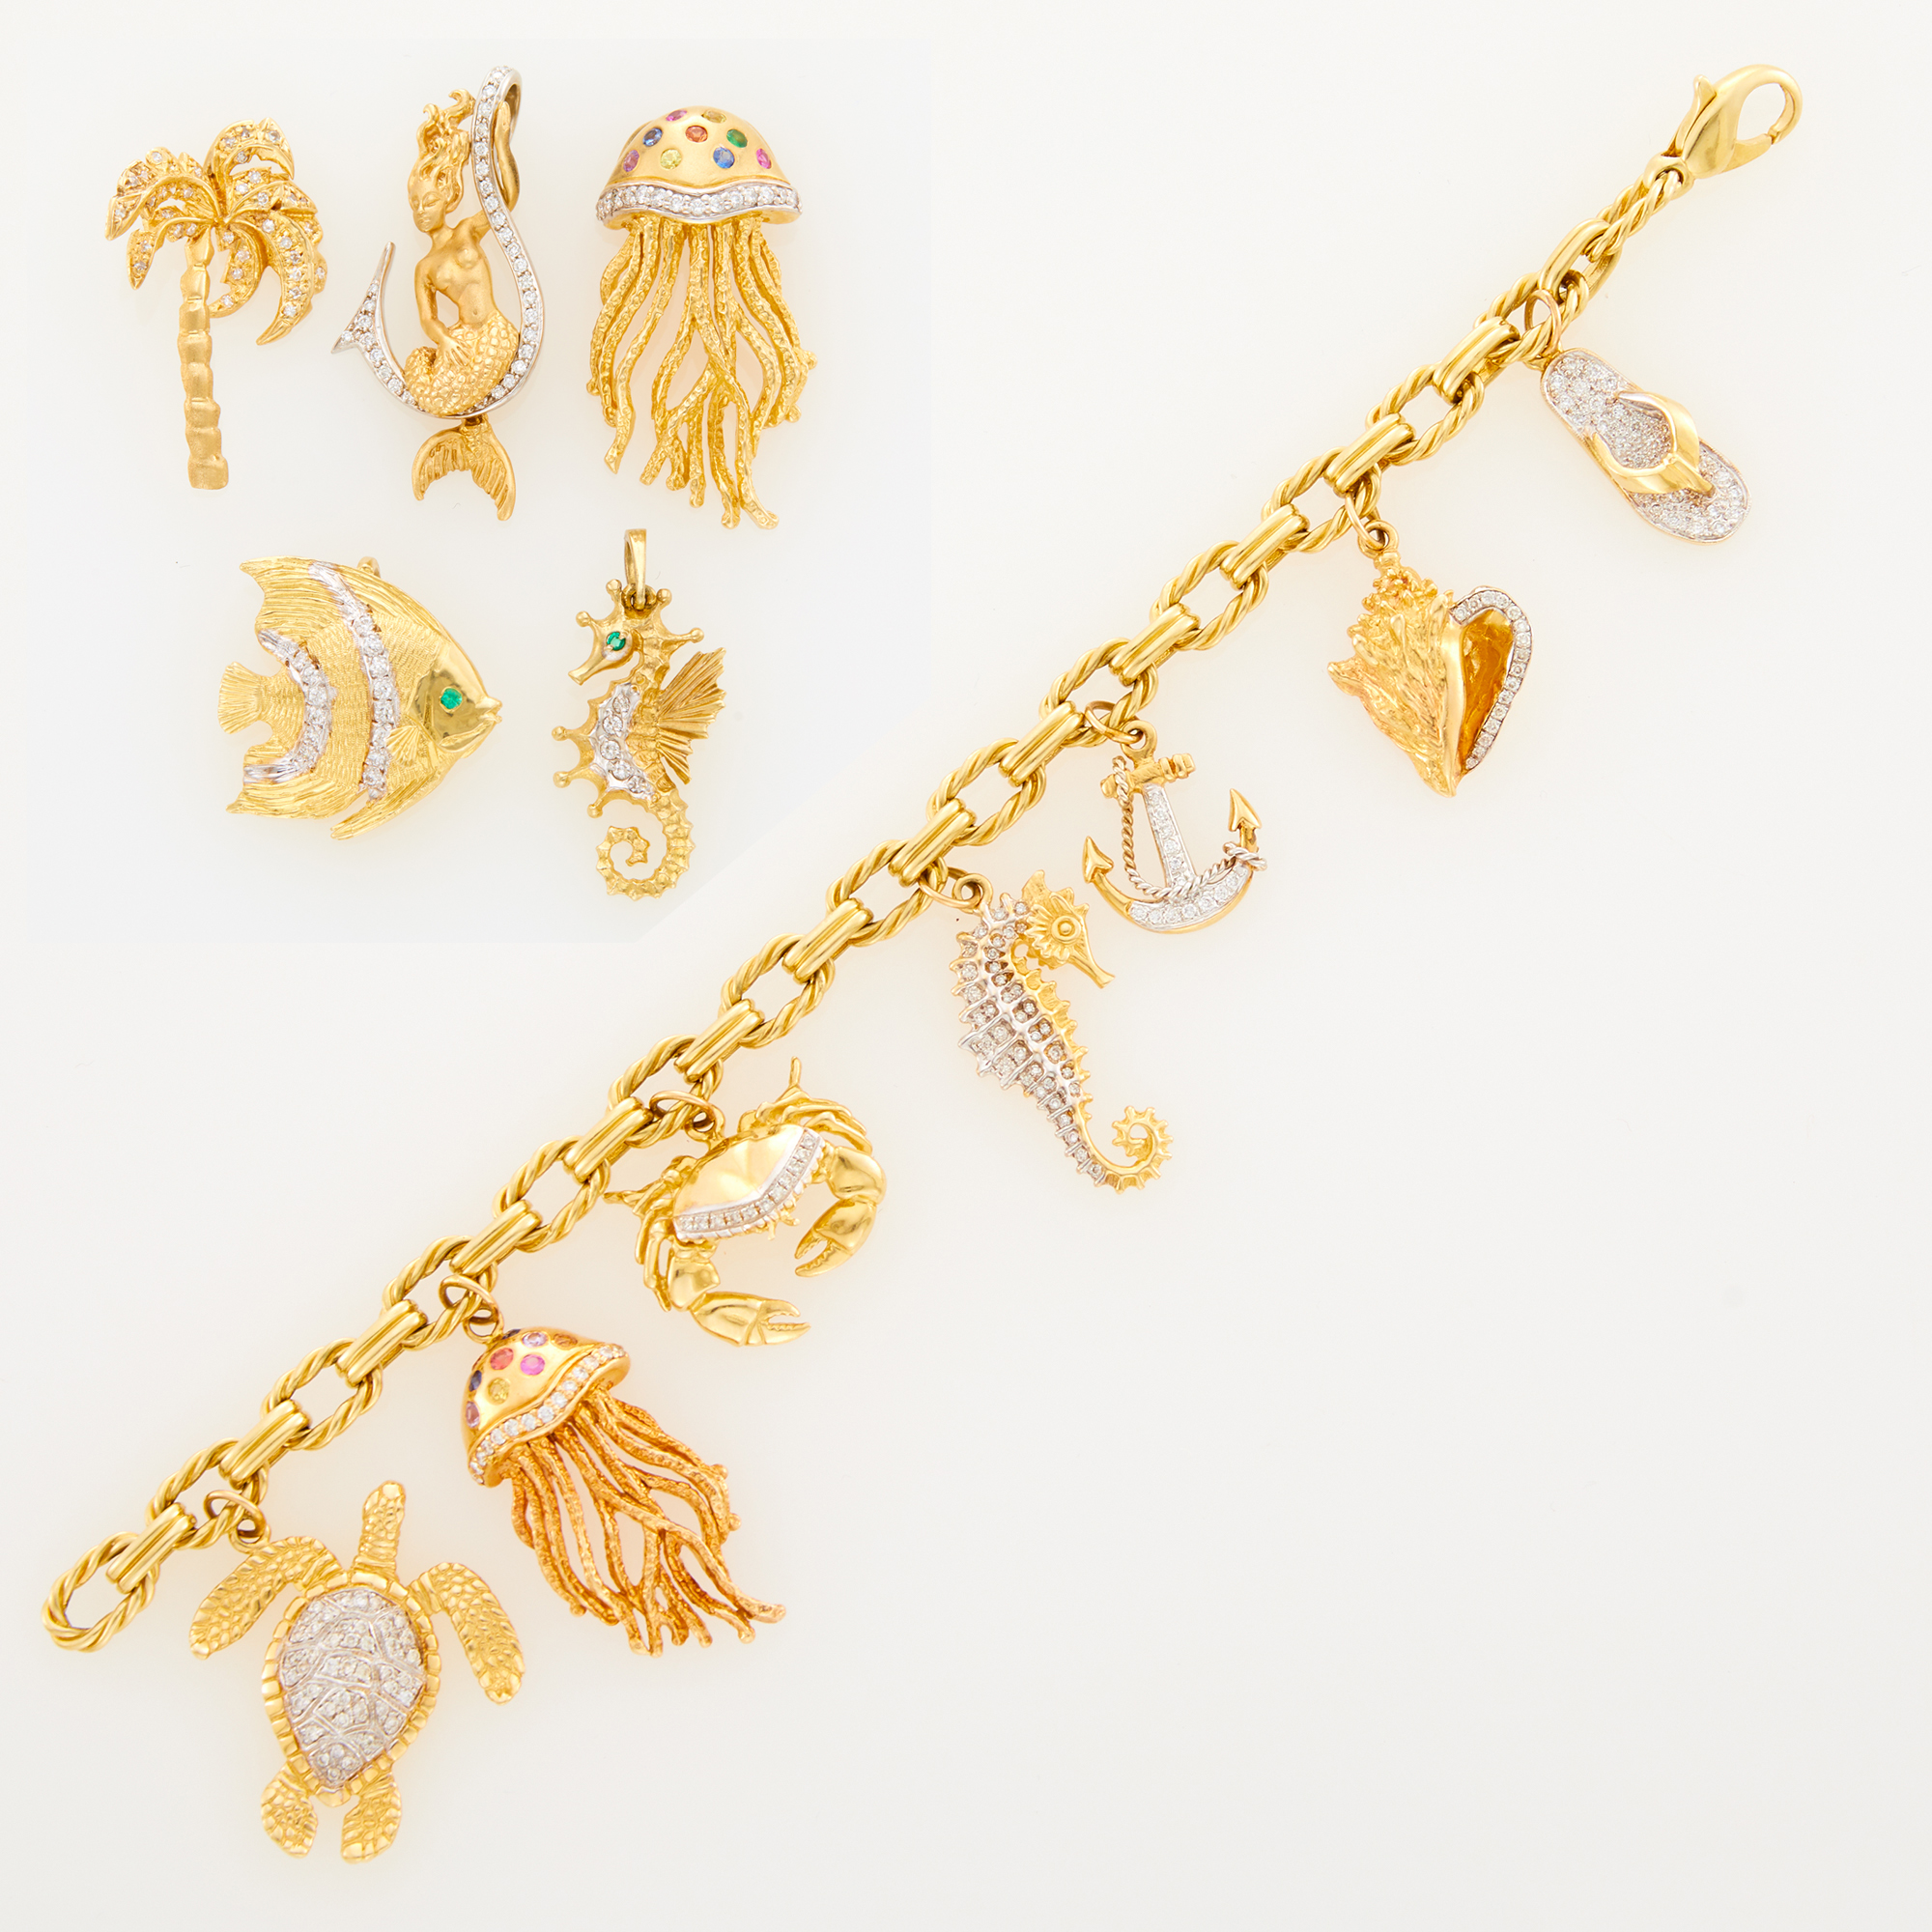 Lot image - Gold, Diamond and Gem-Set Charm Bracelet and Five Loose Charms